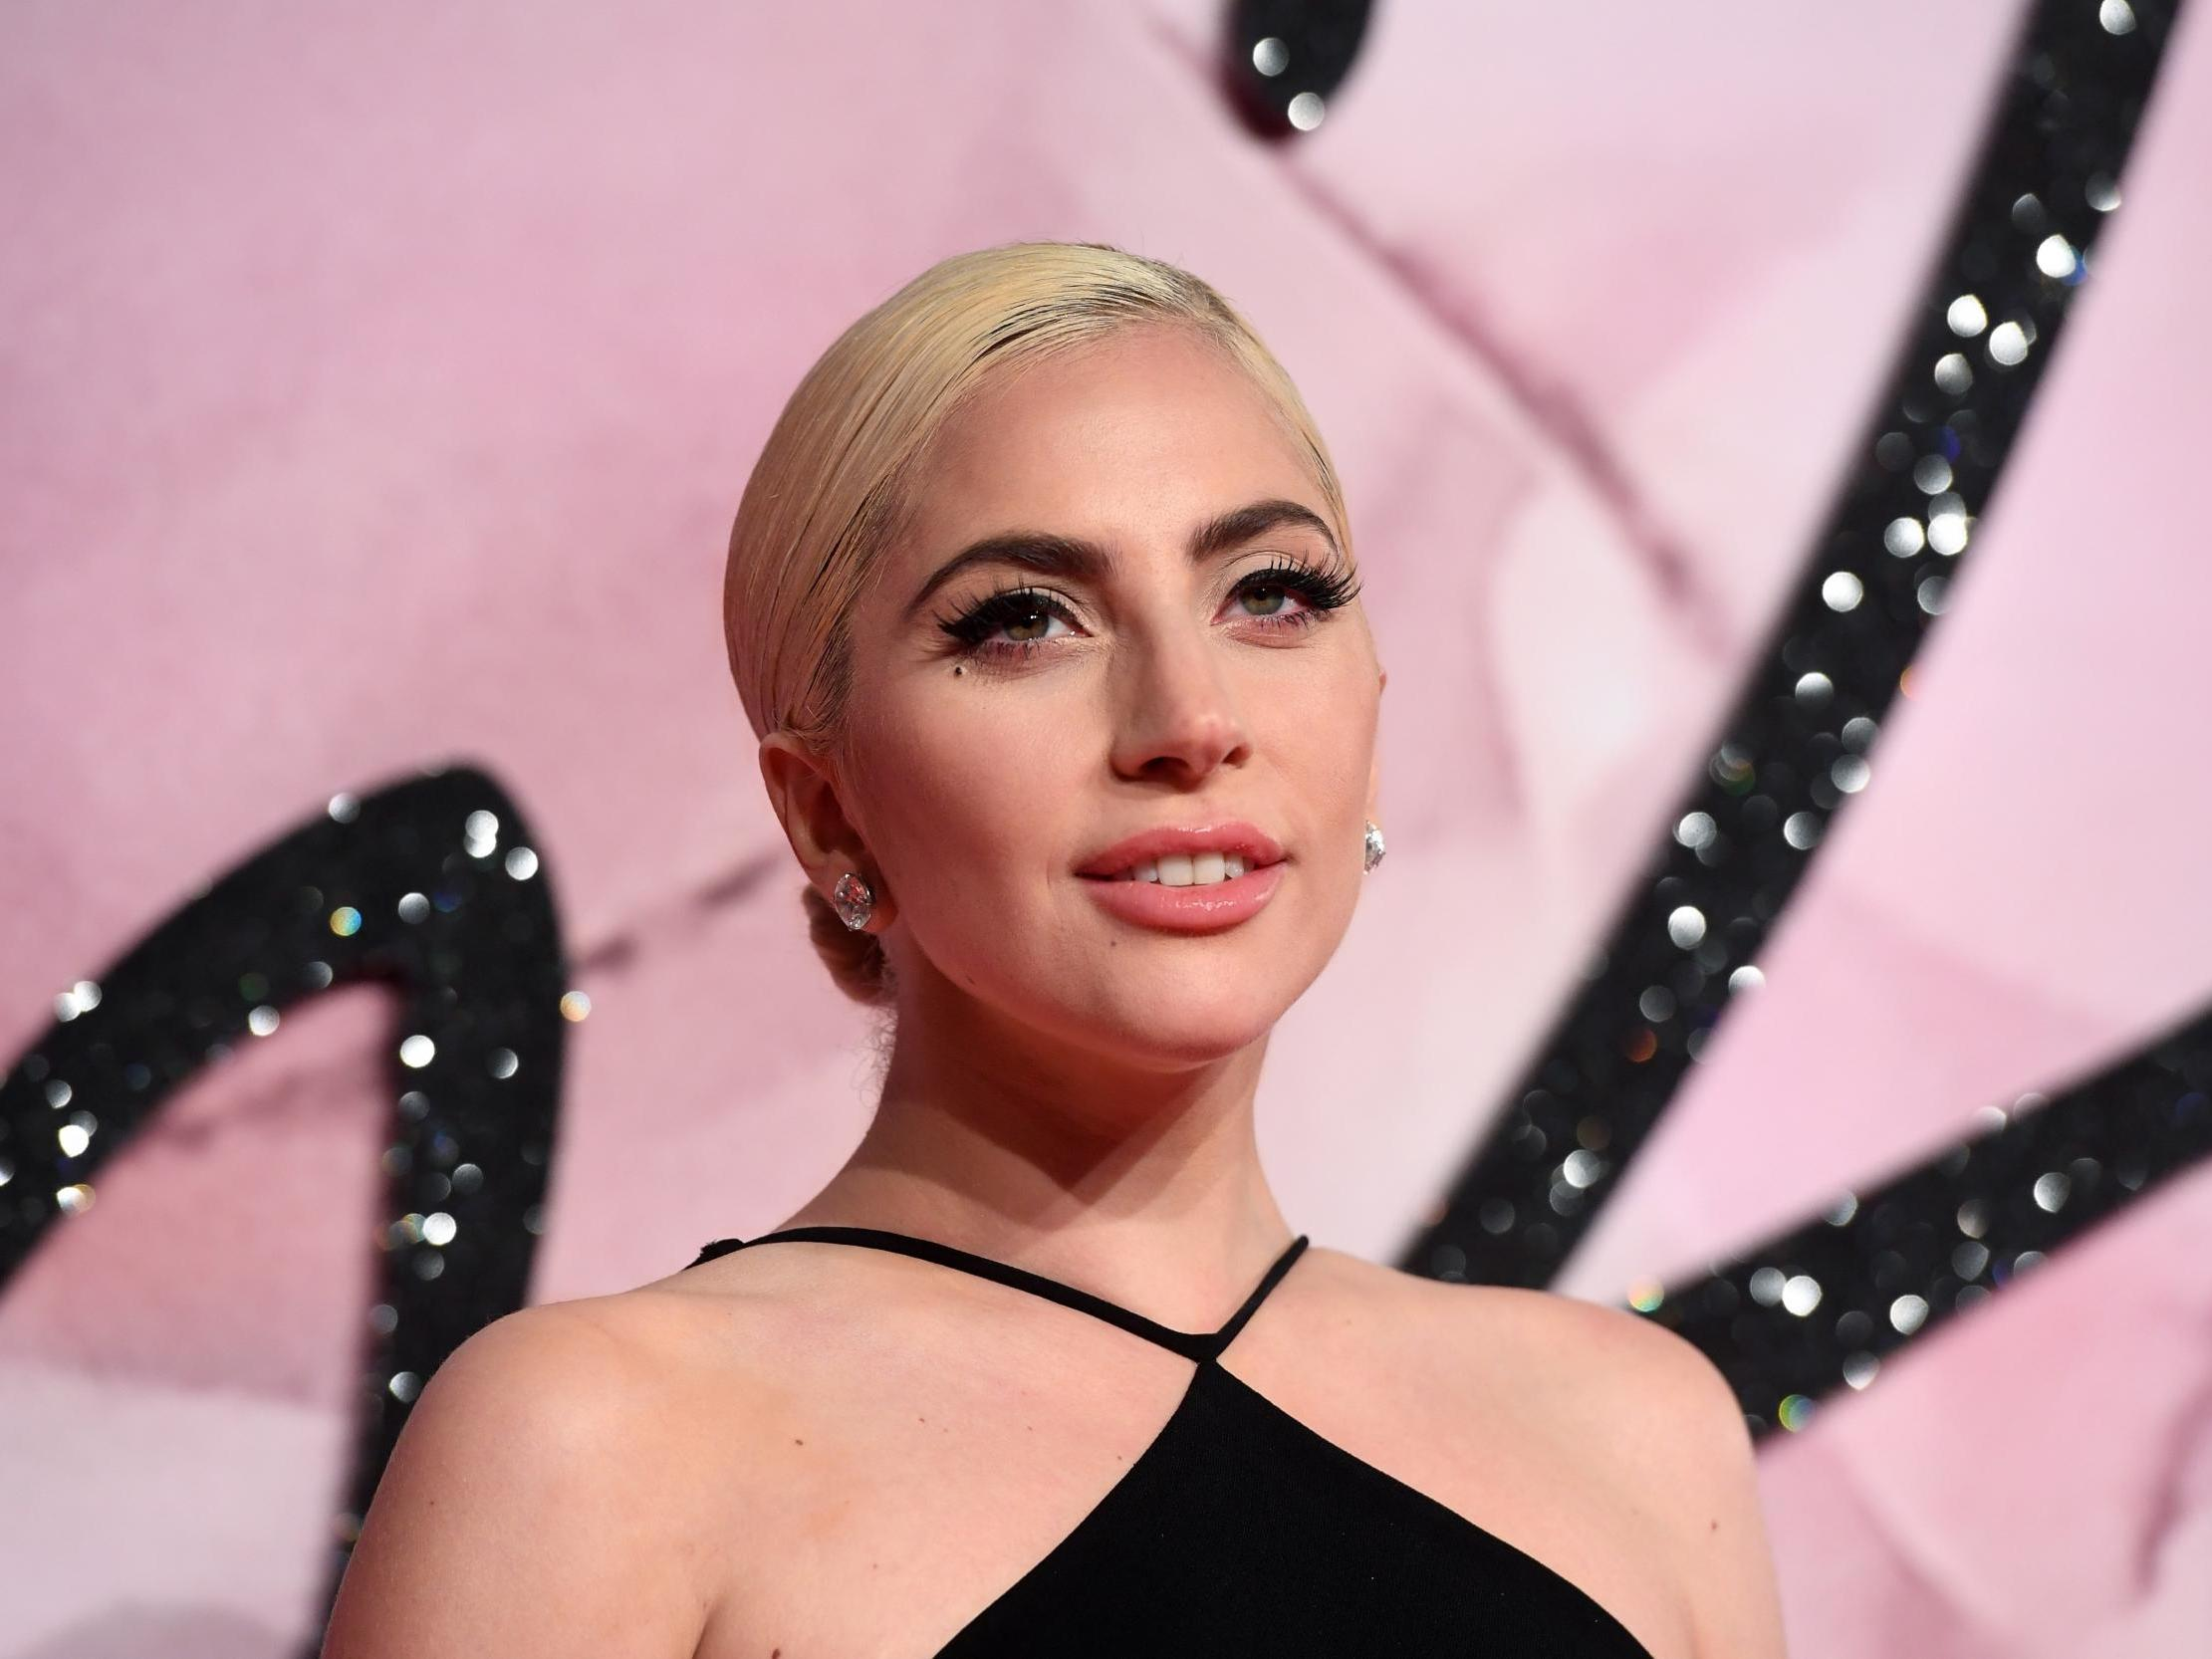 Lady Gaga on how trauma impacted her mental health: 'It took me some time to grieve about the things that have happened to me'